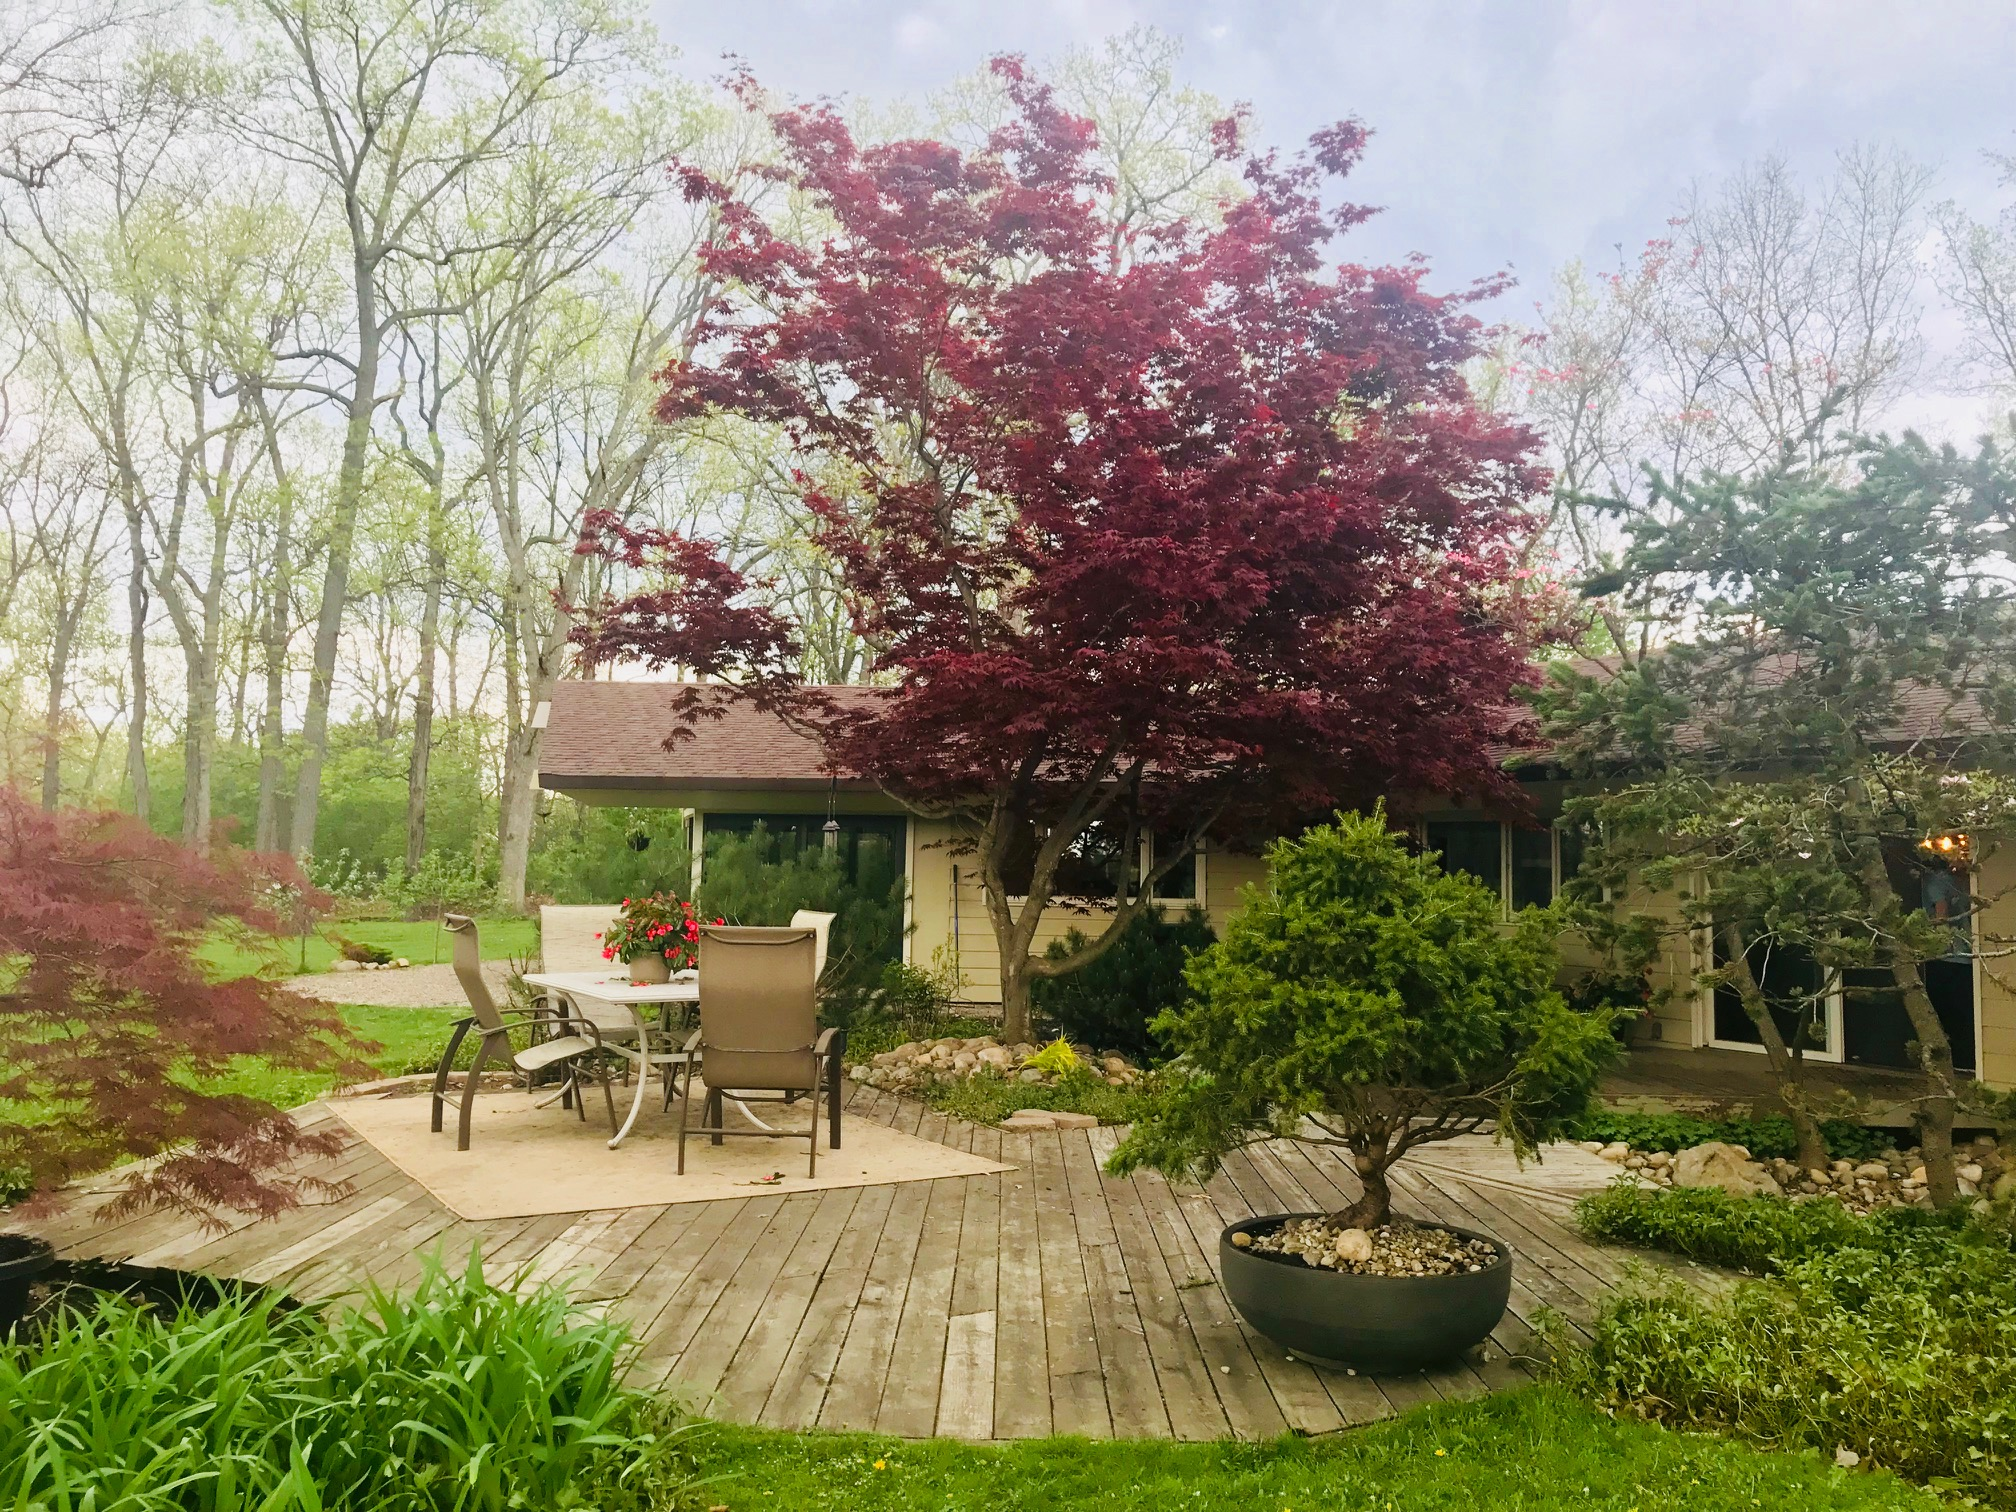 JAPANESE MAPLES AND BONSAI